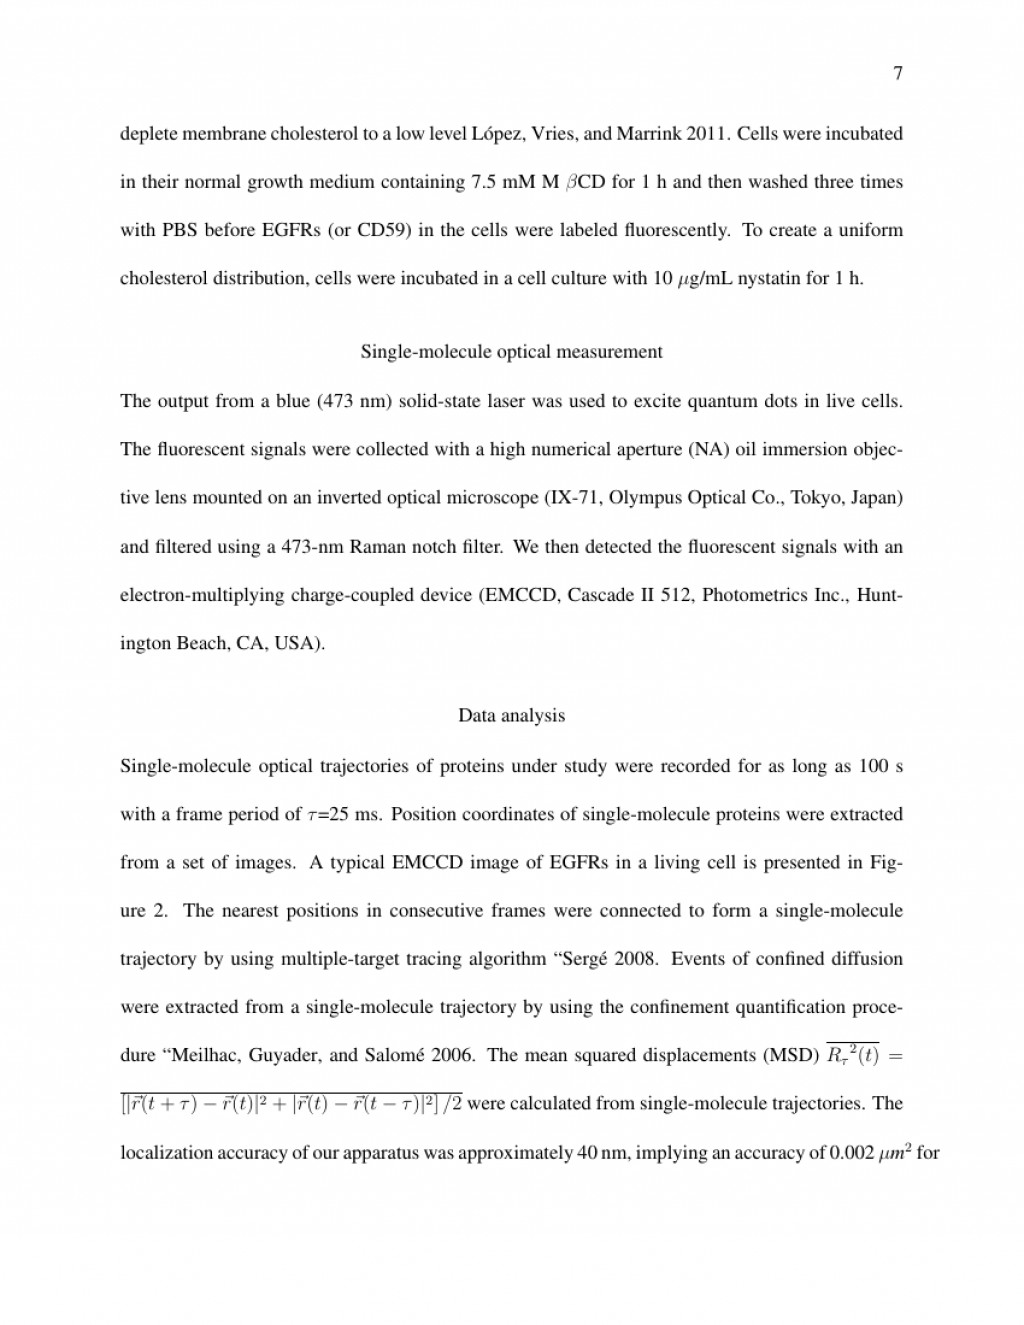 003 Article Format For Researchs Impressive Research Papers Outline Example Paper Apa Style Large